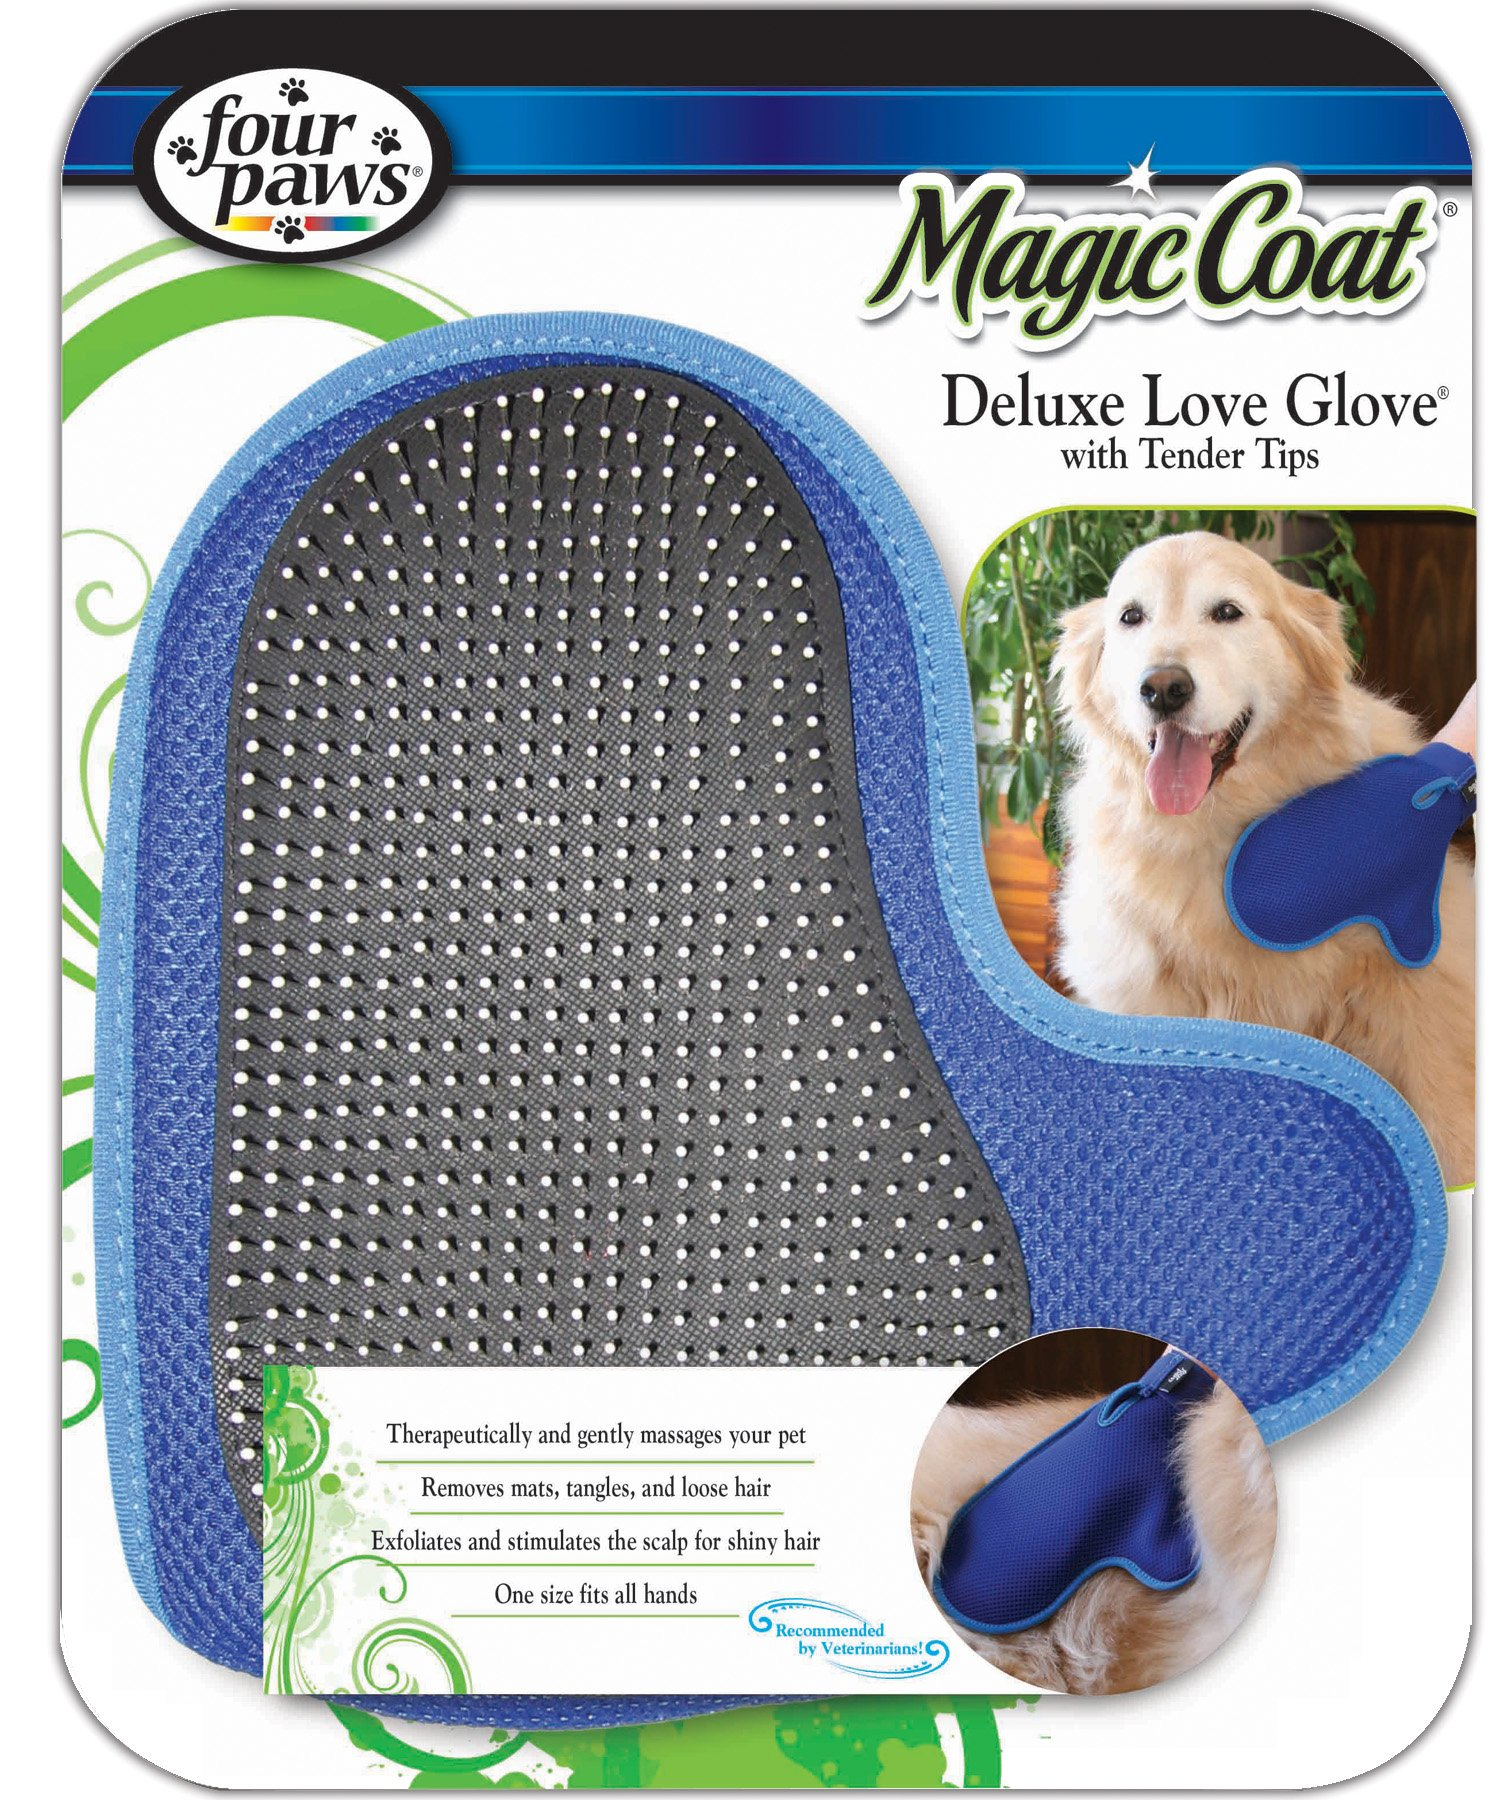 Four Paws Magic Coat Dog Grooming Deluxe Love Glove With Tender Tips